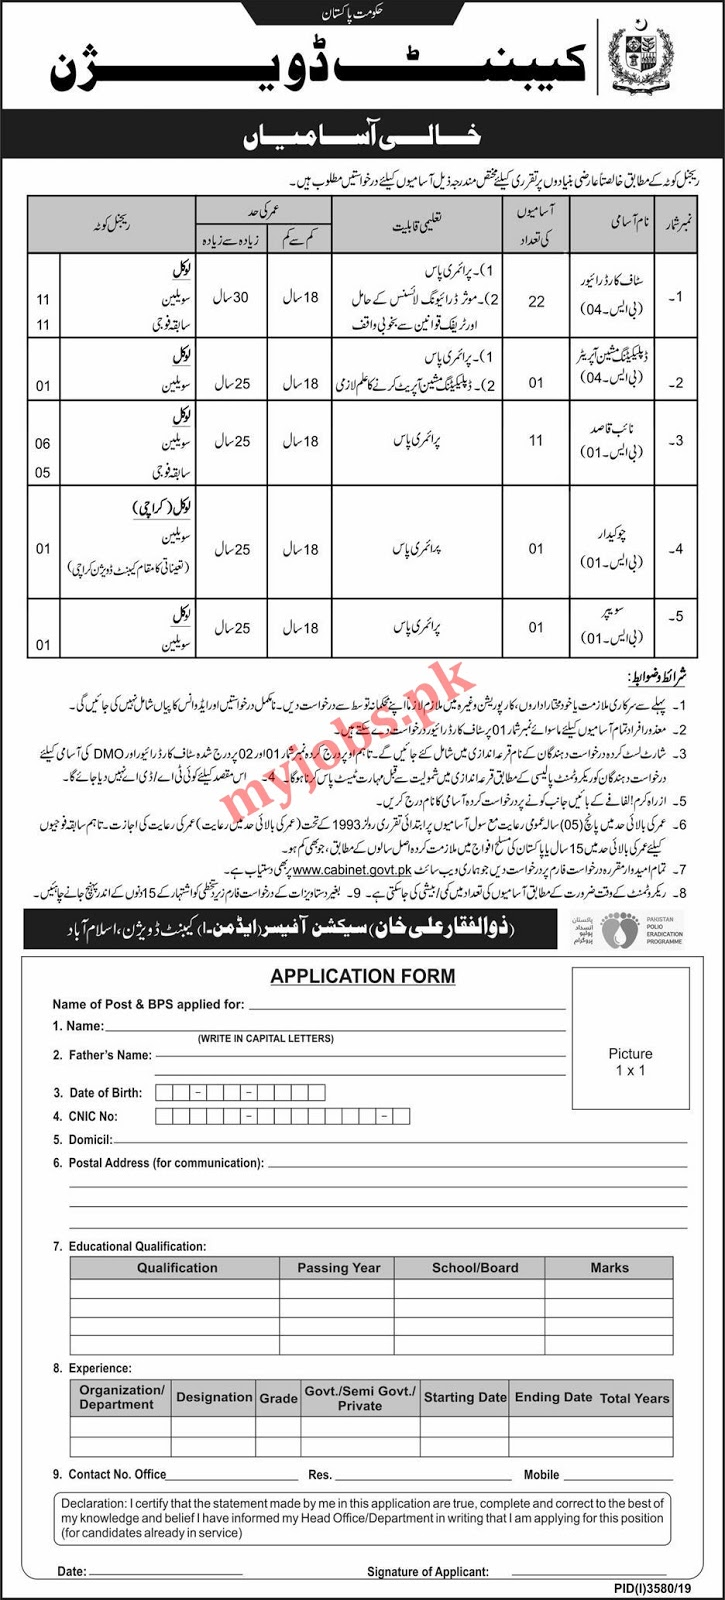 Latest Jobs in Cabinet Division Govt of Pakistan 2020 I Download Application Form